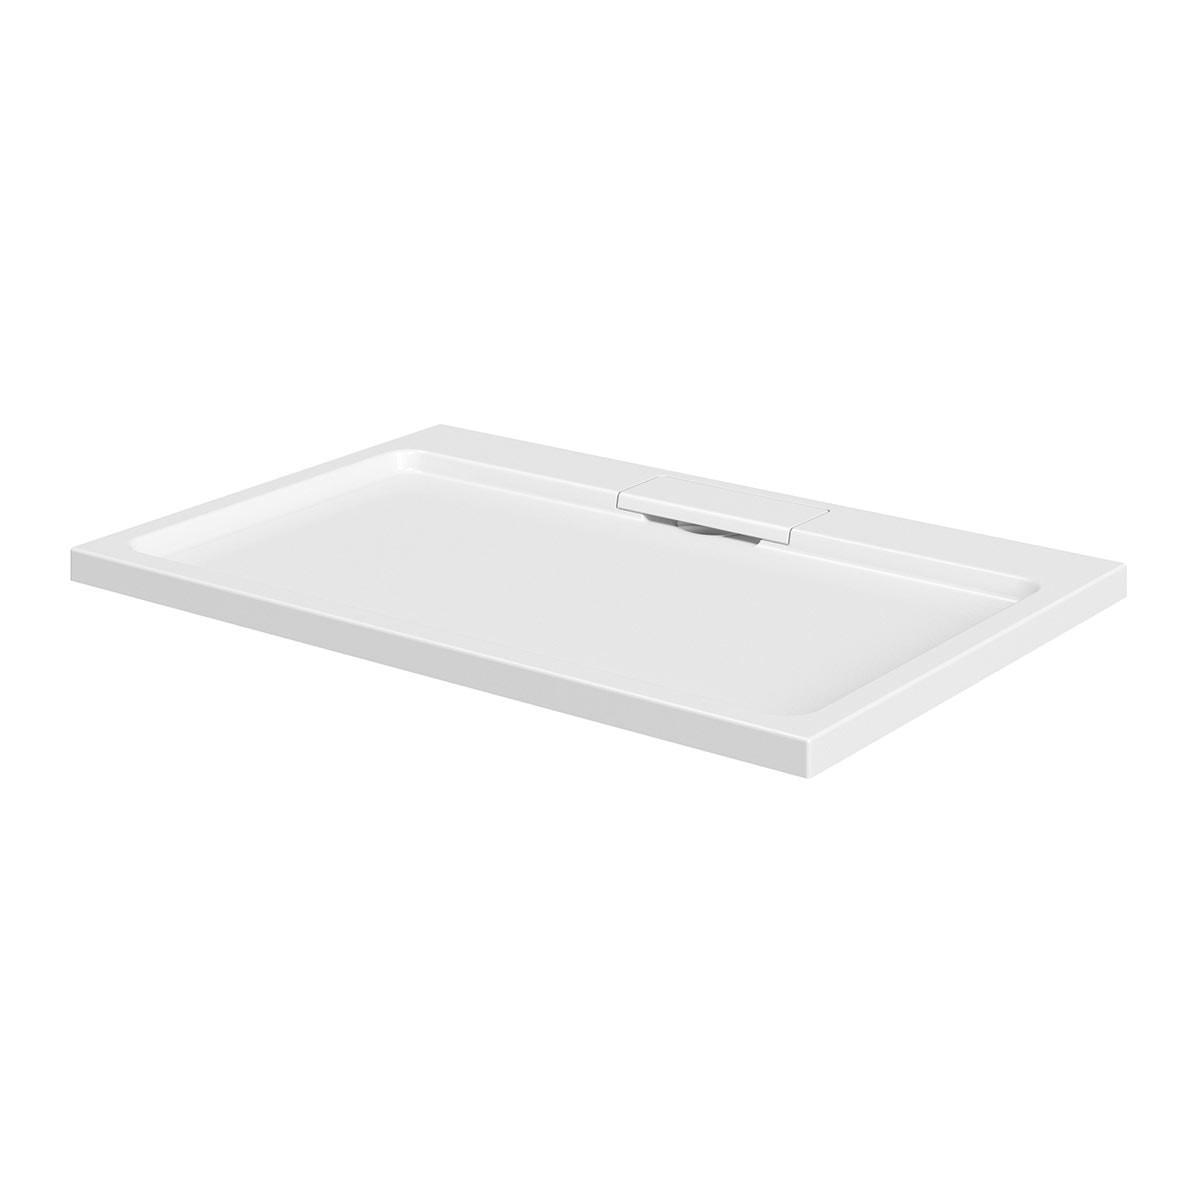 Mode Designer Rectangular Stone Shower Tray Victoriaplum